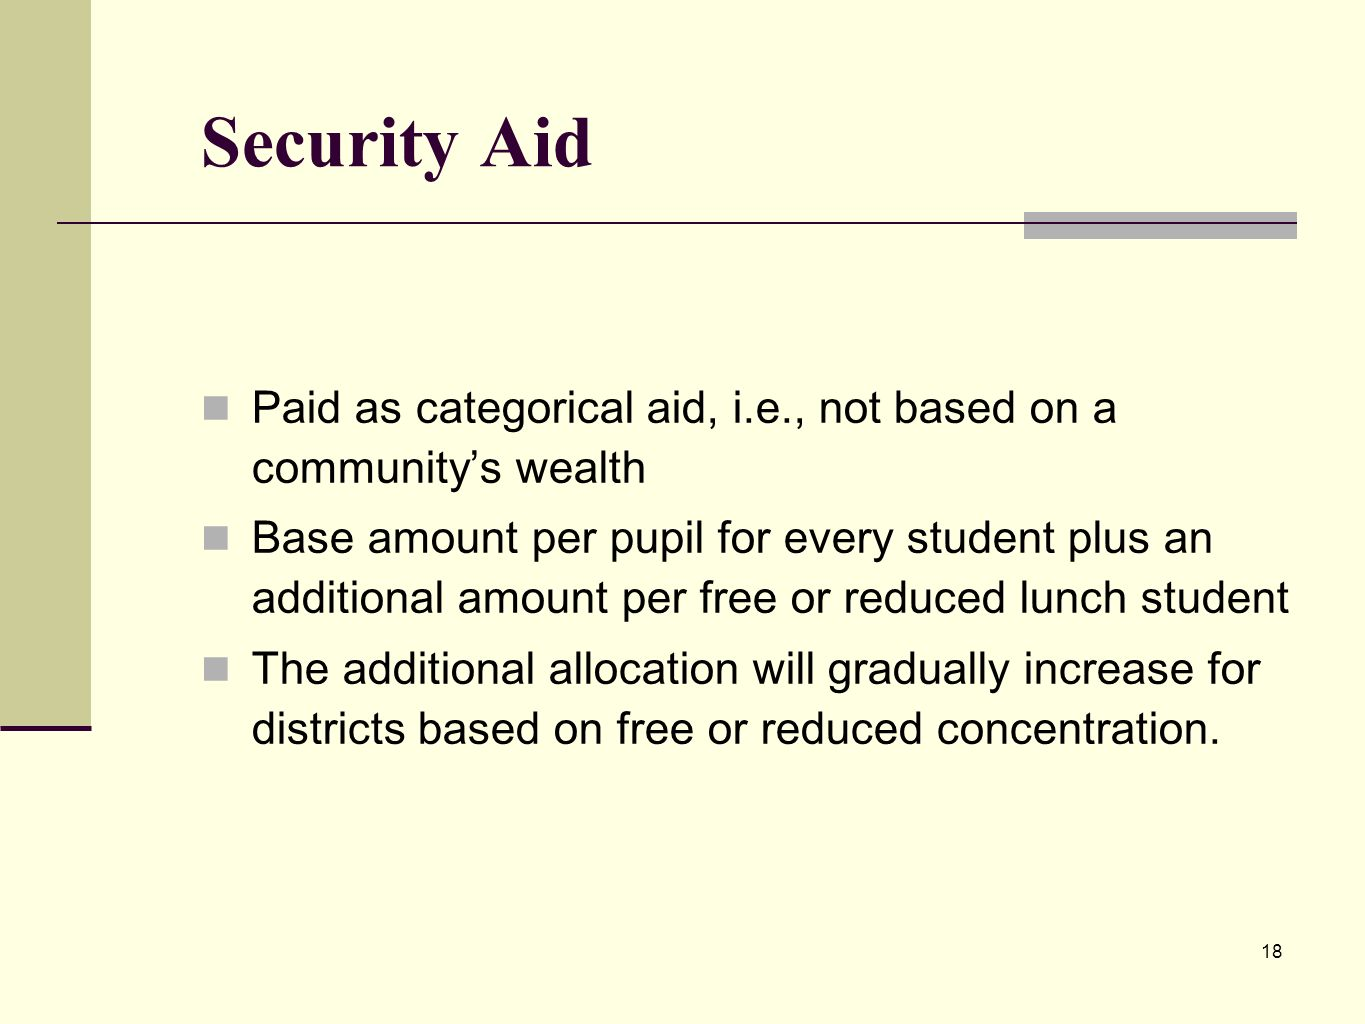 18 Security Aid Paid as categorical aid, i.e., not based on a communitys wealth Base amount per pupil for every student plus an additional amount per free or reduced lunch student The additional allocation will gradually increase for districts based on free or reduced concentration.